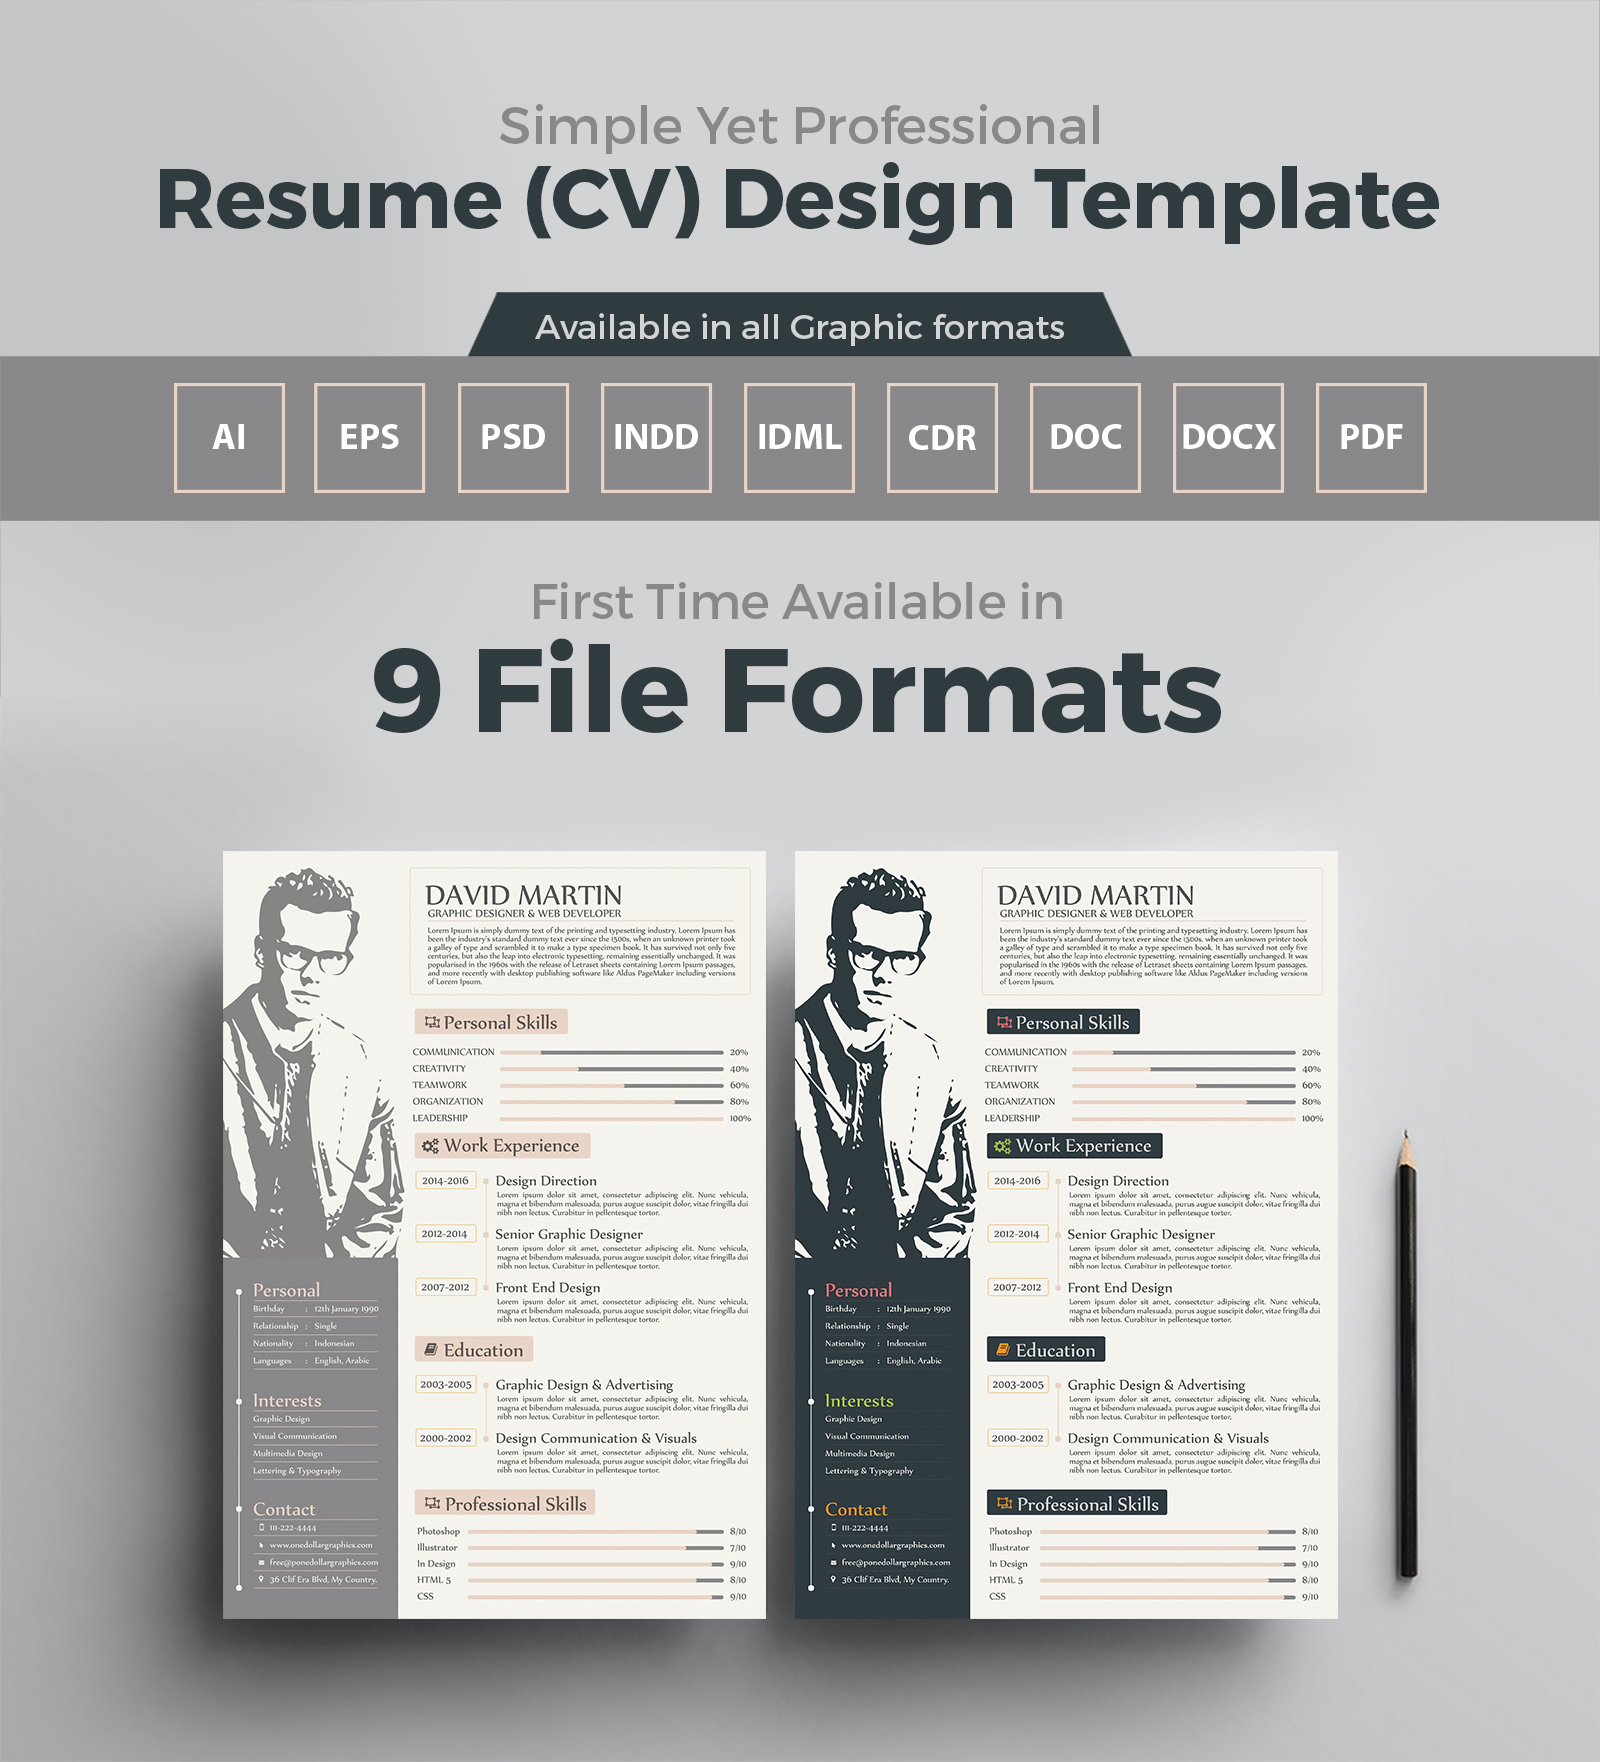 simple yet professional resume  cv  design templates in ai  eps  psd  pdf  cdr  doc  docx  indd